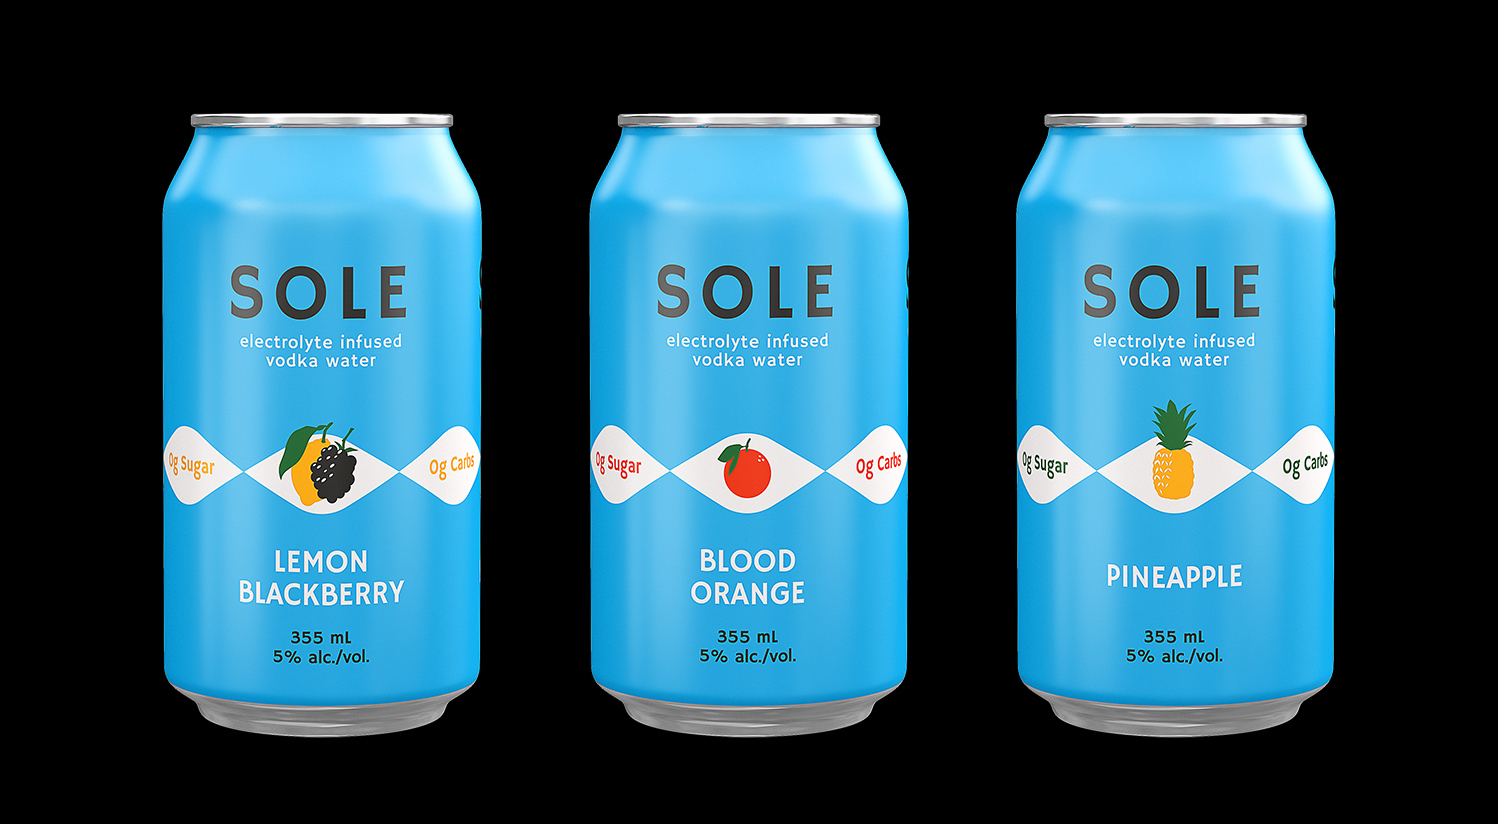 Sole Electrolyte infused vodka water lineup